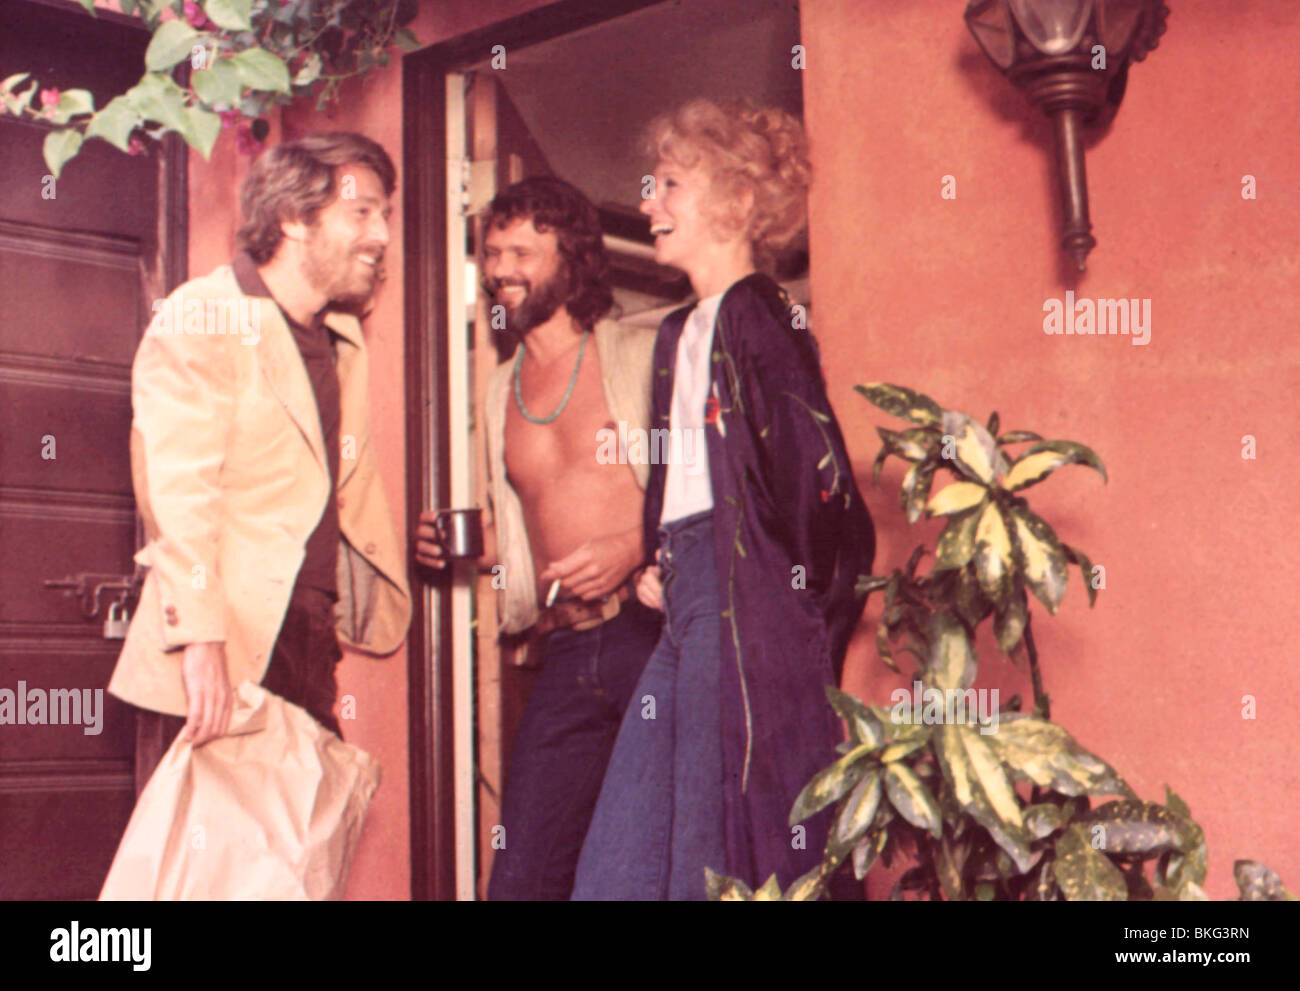 BLUME IN LOVE (1973) GEORGE SEGAL, KRIS KRISTOFFERSON, SUSAN ANSPACH BLLV 006 - Stock Image